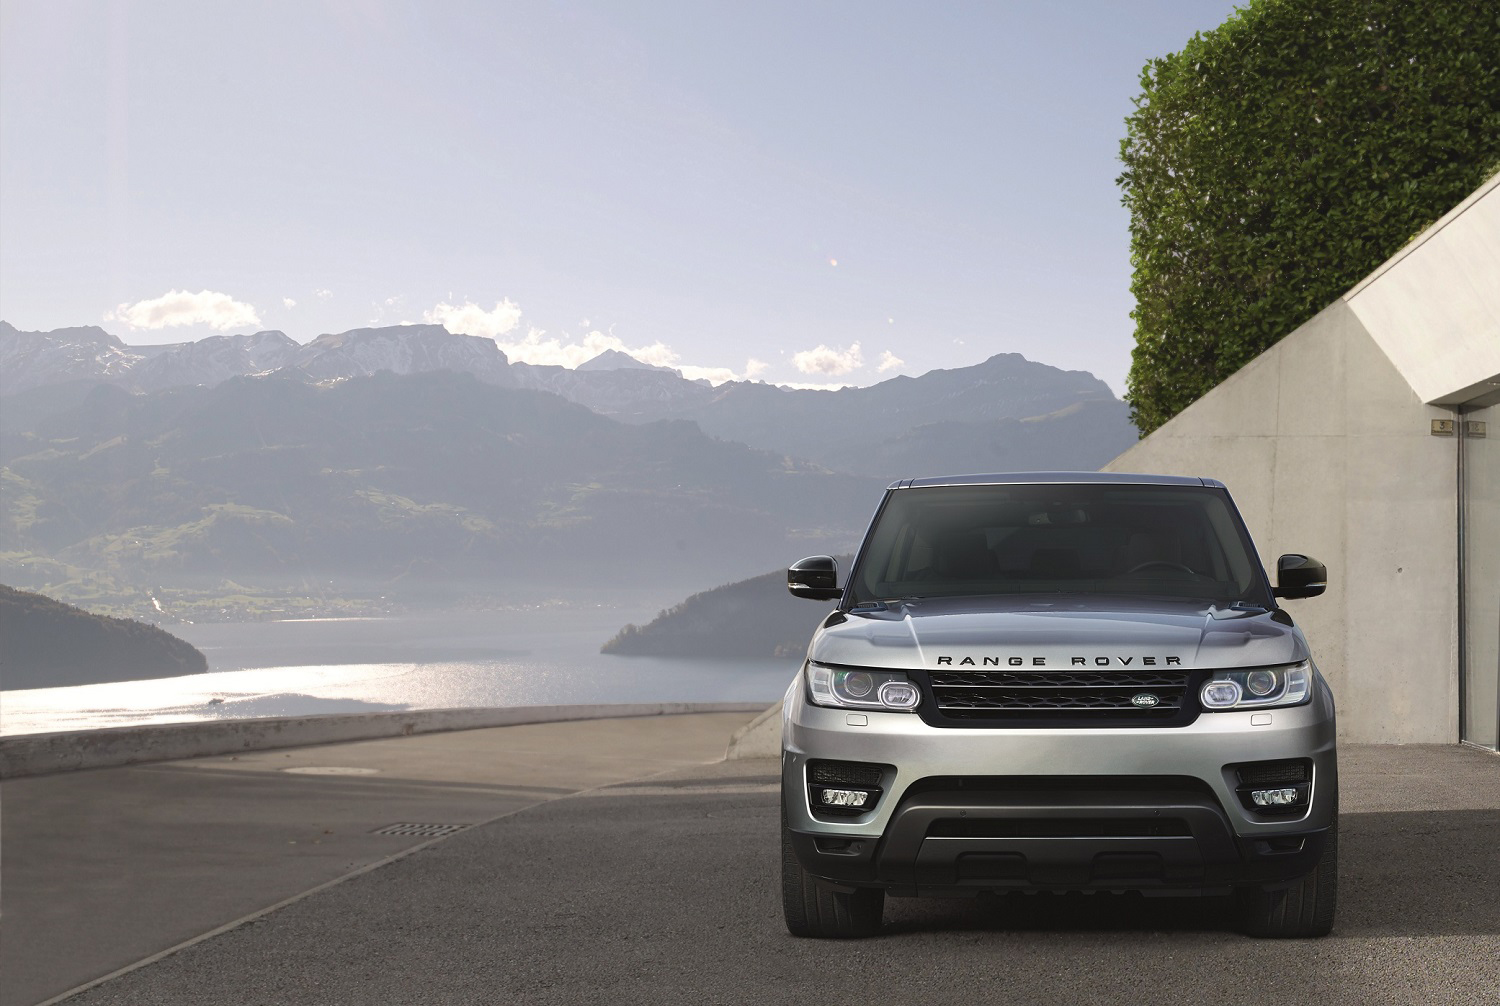 land rover s 2017 range rover sport is as high tech as it is capable off road. Black Bedroom Furniture Sets. Home Design Ideas